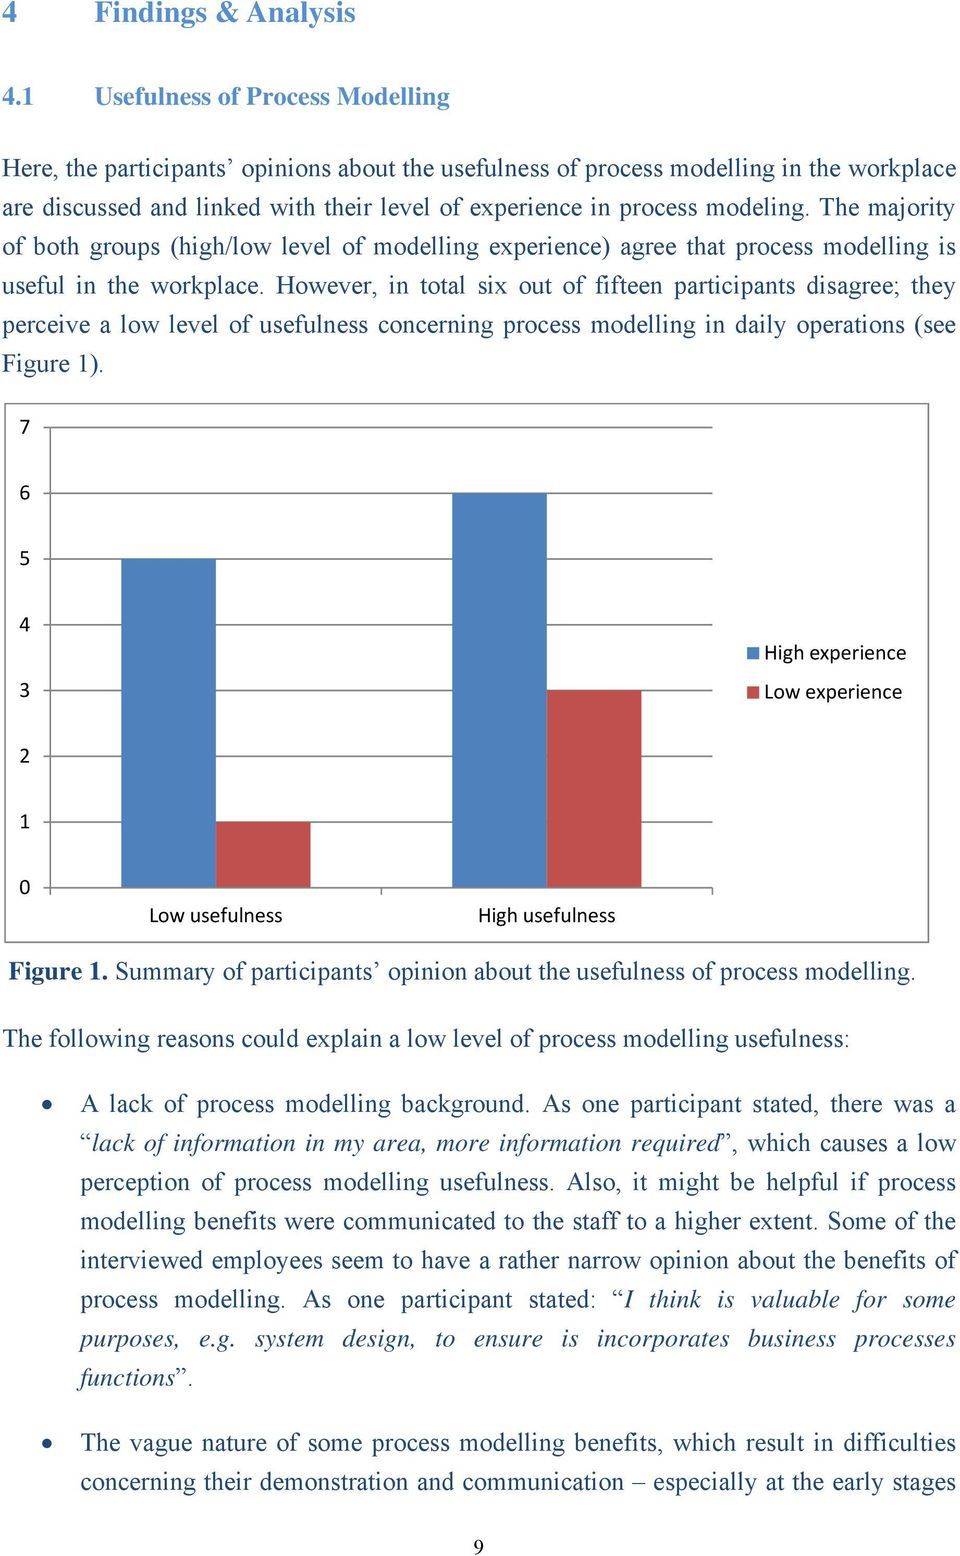 modeling. The majority of both groups (high/low level of modelling experience) agree that process modelling is useful in the workplace.